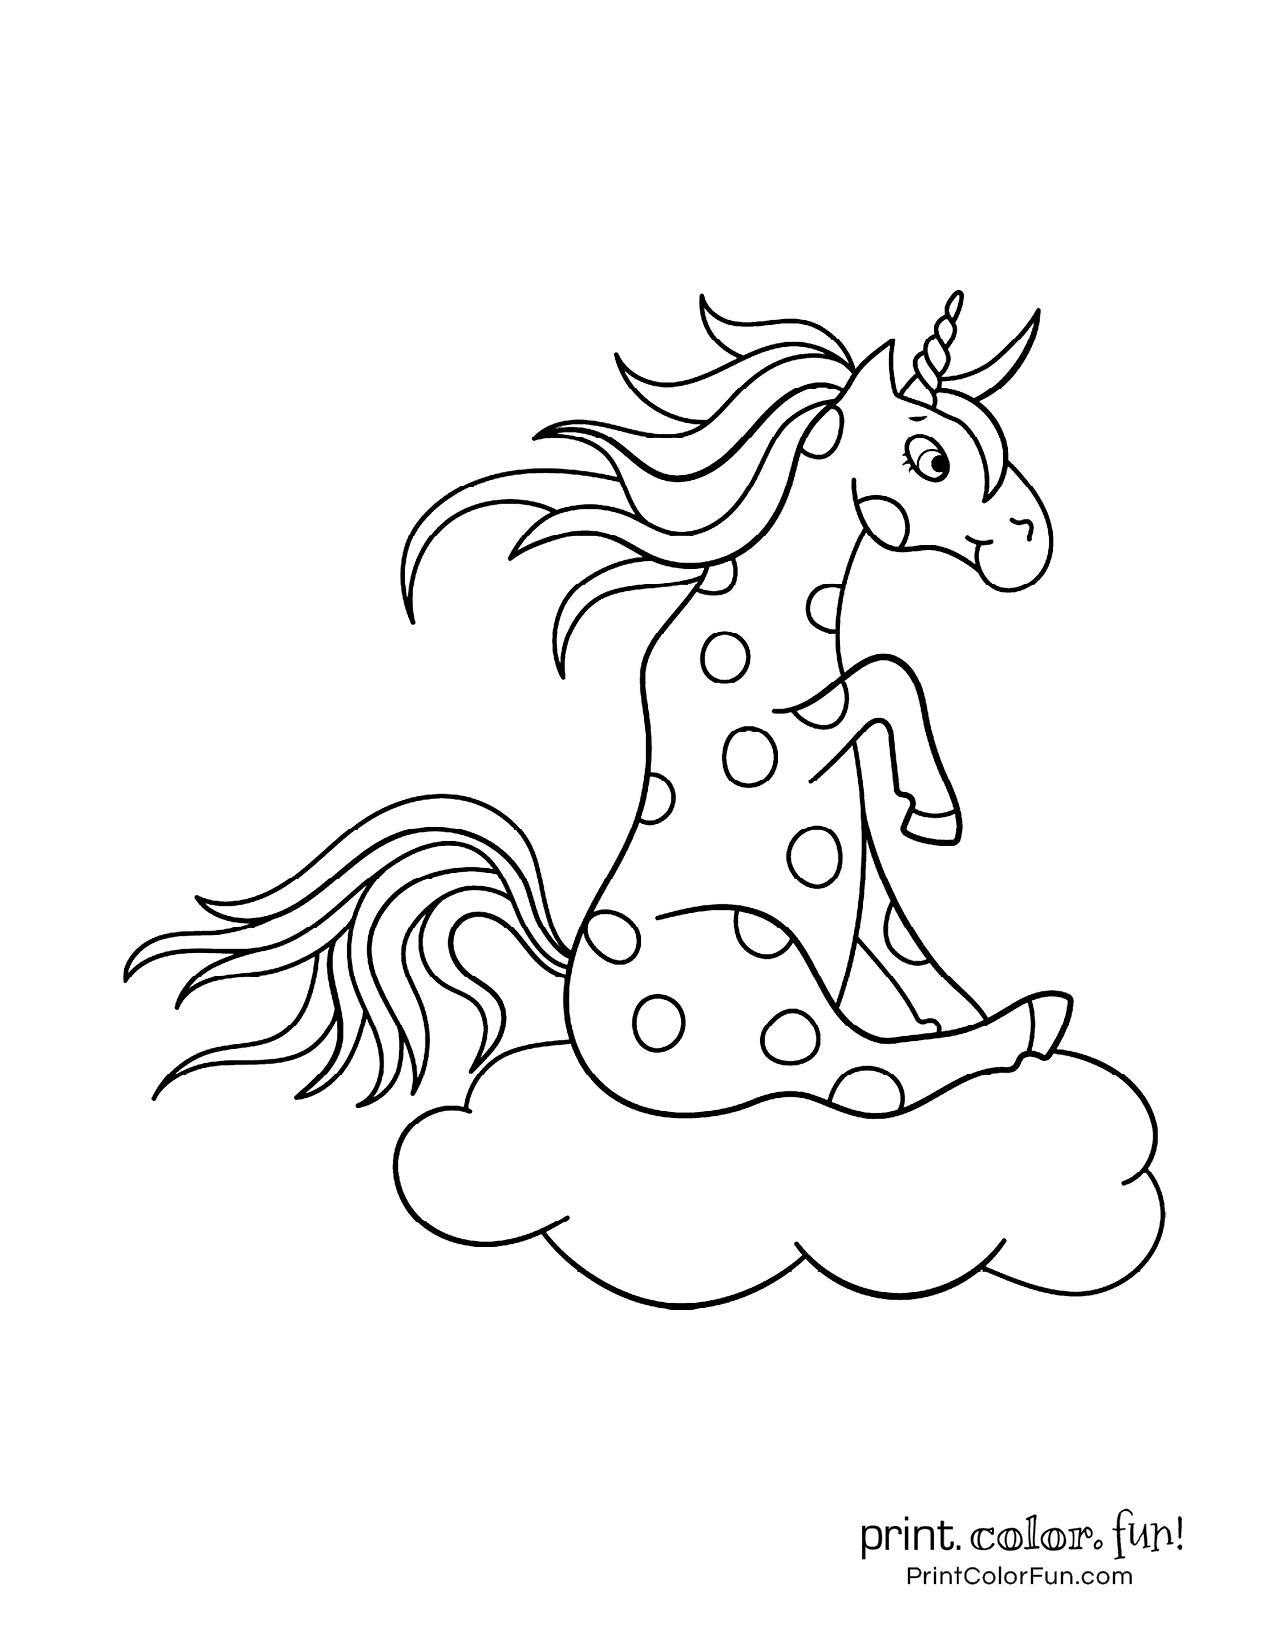 100 Magical Unicorn Coloring Pages The Ultimate Free Printable Collection At Print Co Unicorn Coloring Pages Disney Coloring Sheets Mermaid Coloring Pages